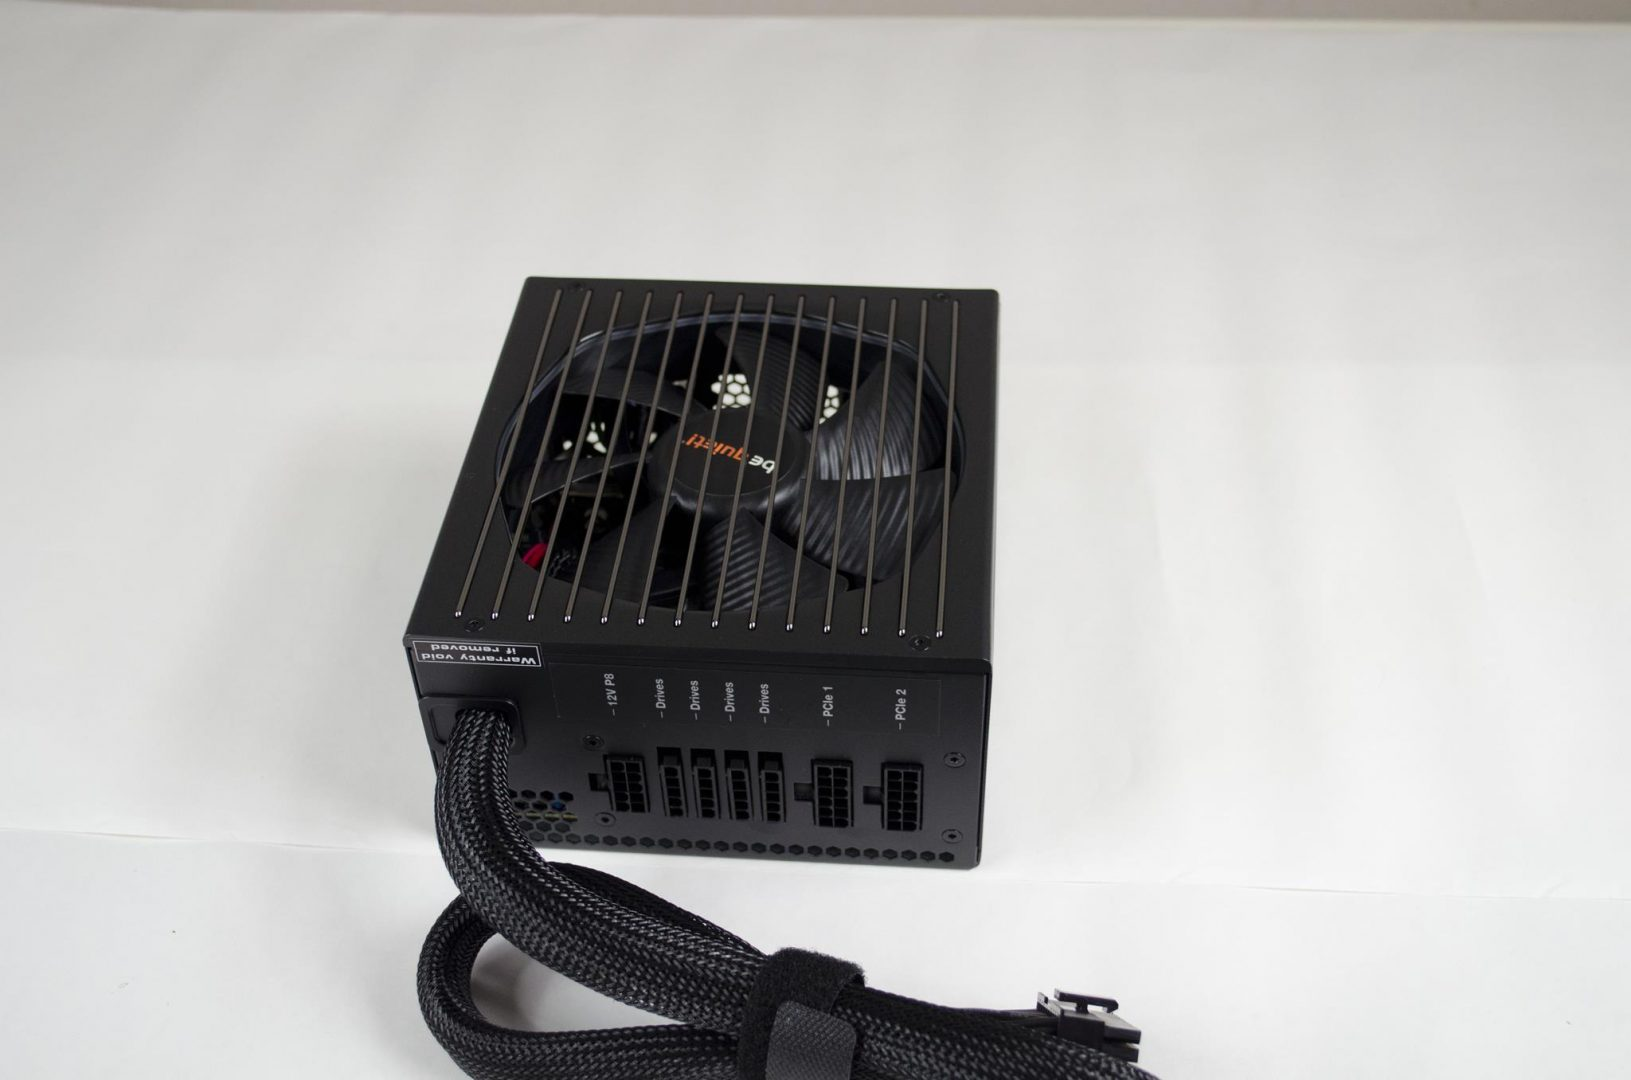 be quiet! Straight Power 10 600W Power Supply_4